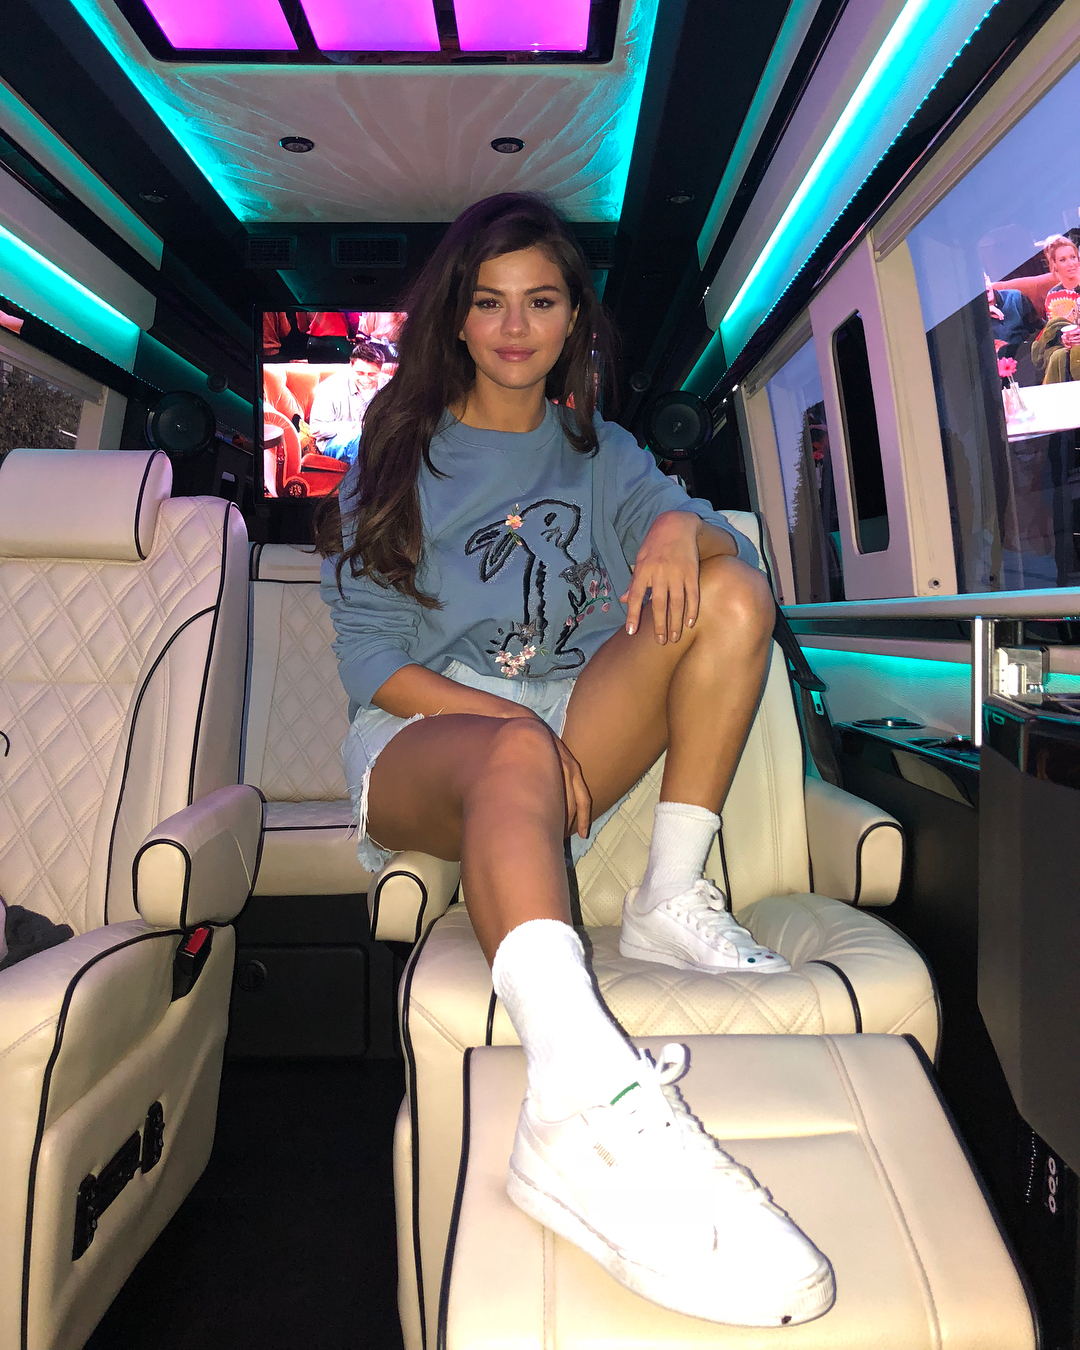 Selena Gomez Isnt Instagrams Most Followed User Anymore, But Shes Still Up There